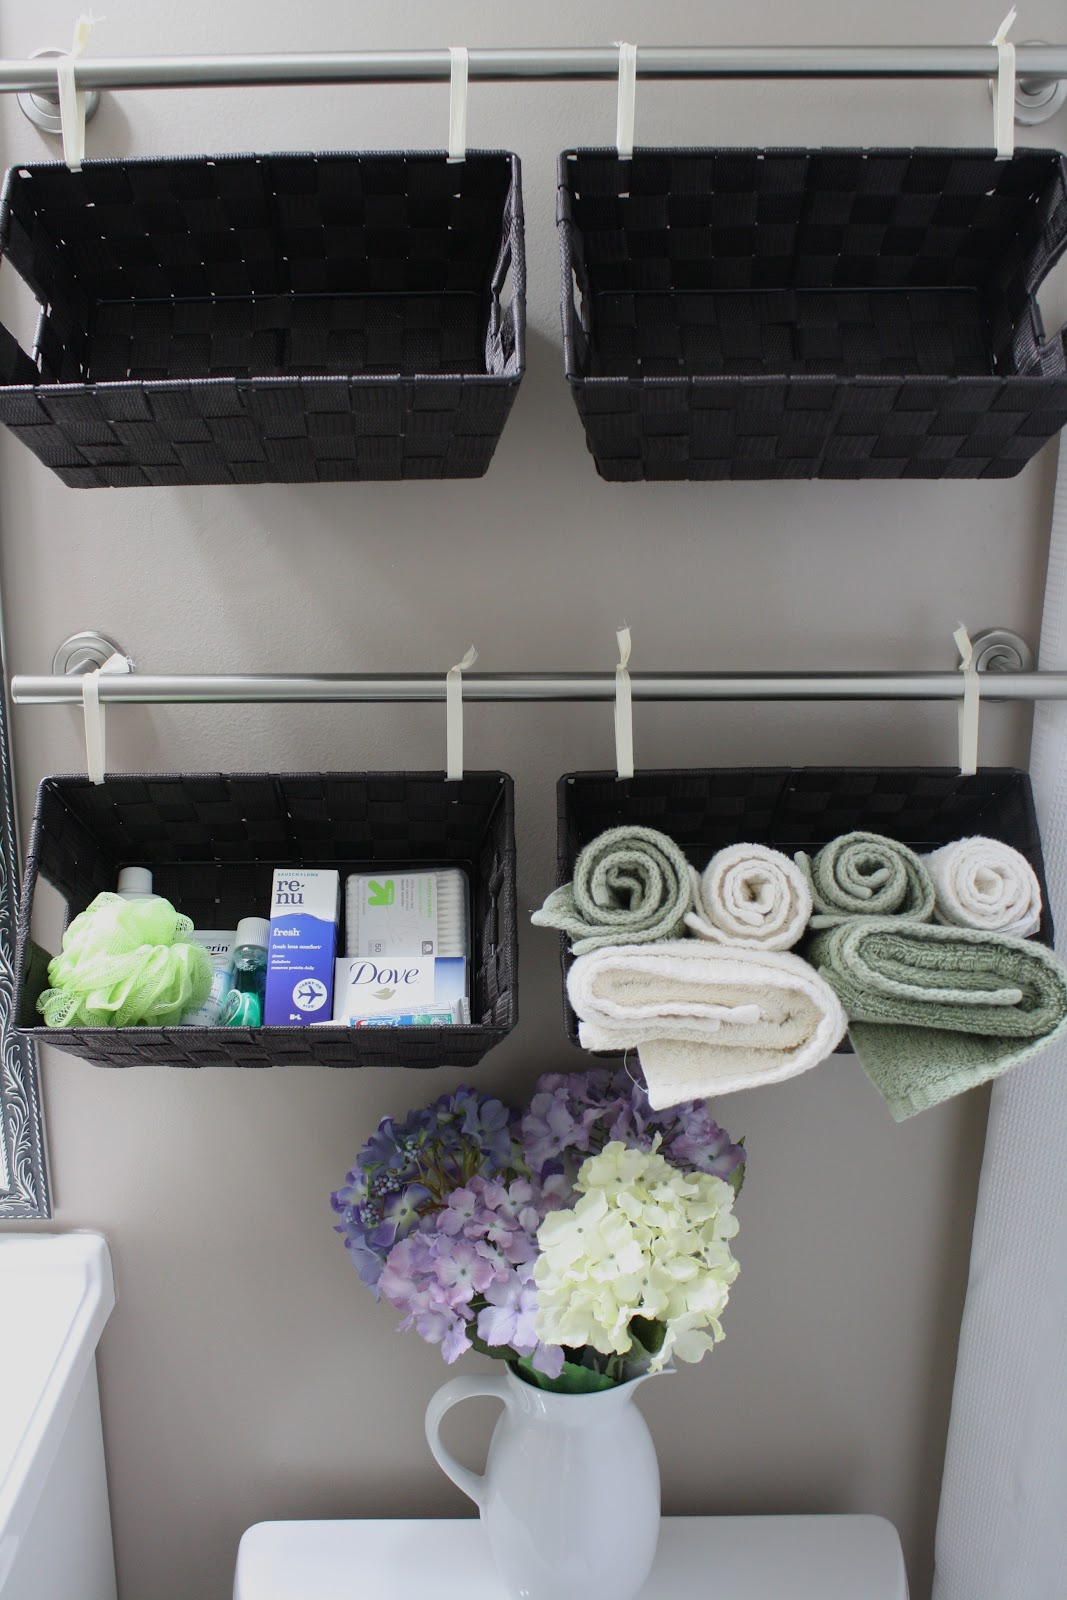 Bathroom wall storage baskets - A Wall Full Of Baskets